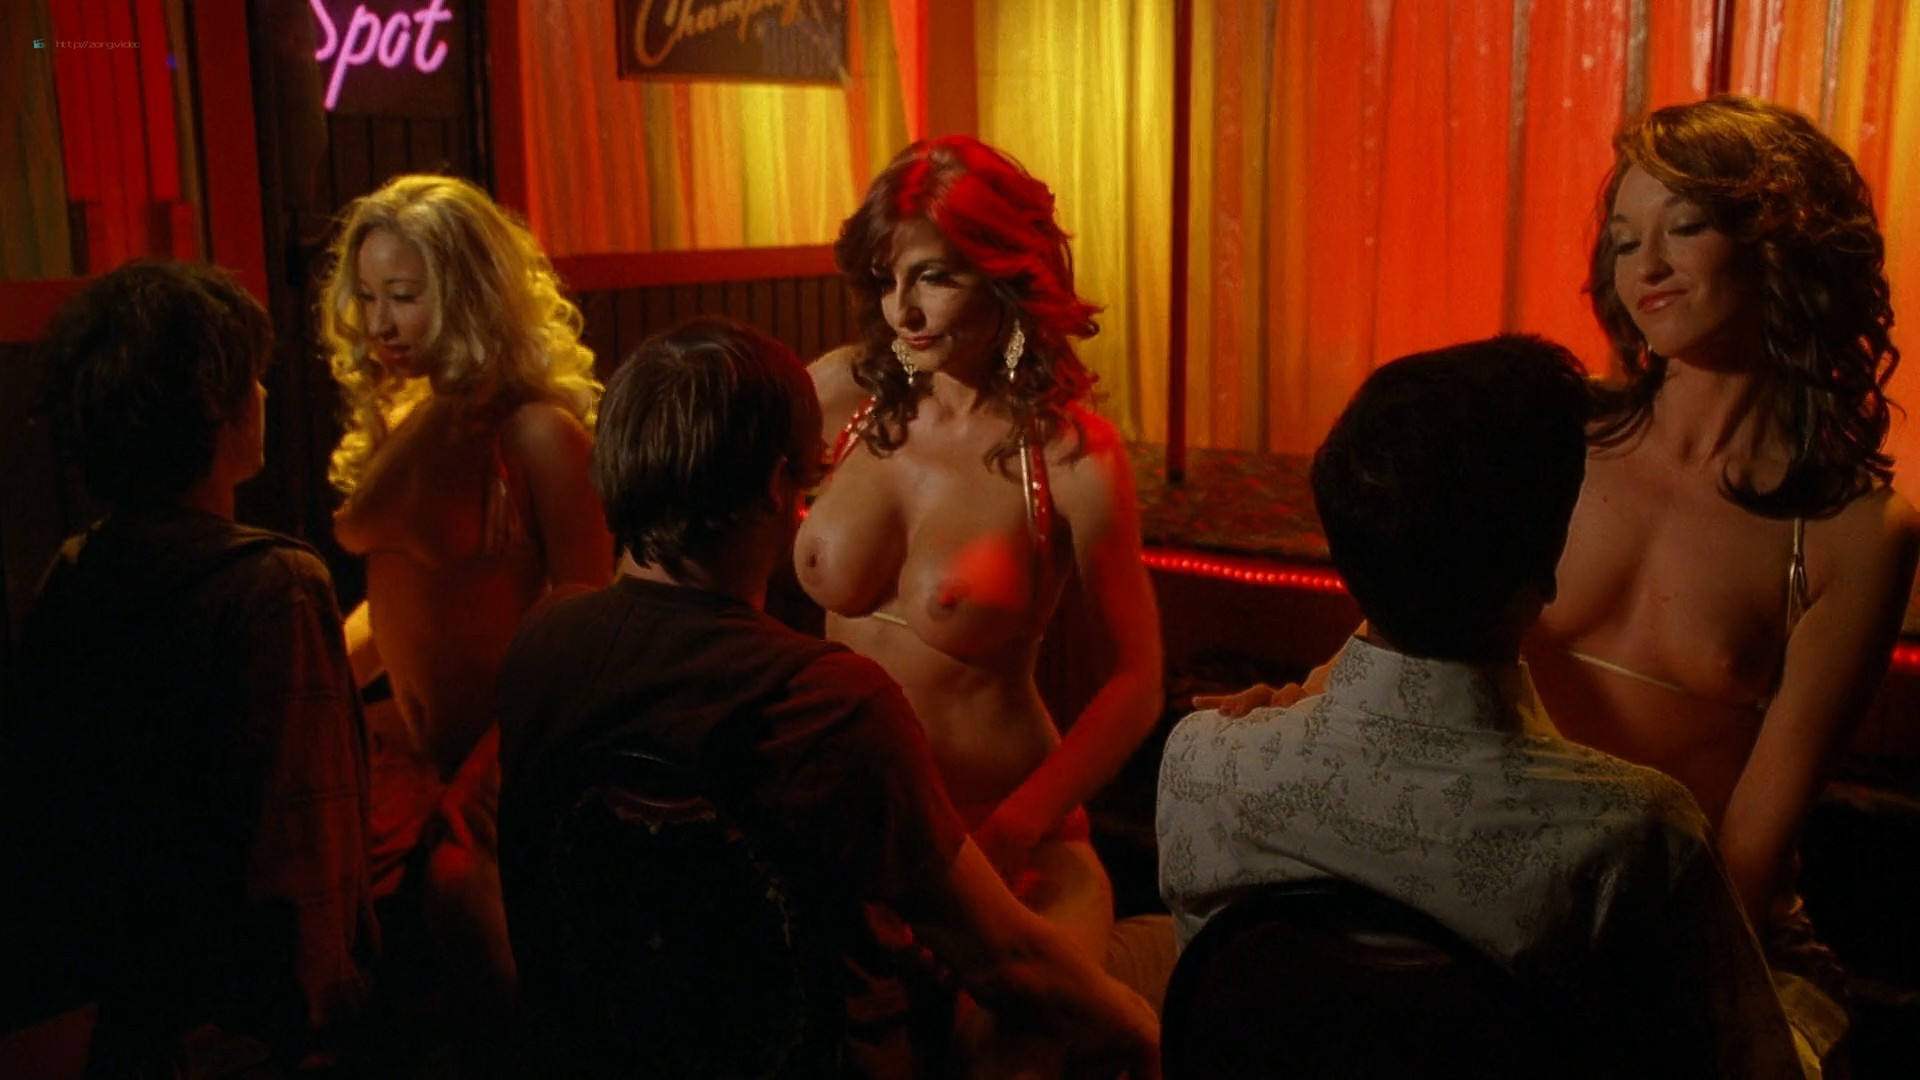 Julianna Guill Michelle Gordon and others all nude - Road Trip-Beer Pong (2009) HD 1080p Web (7)